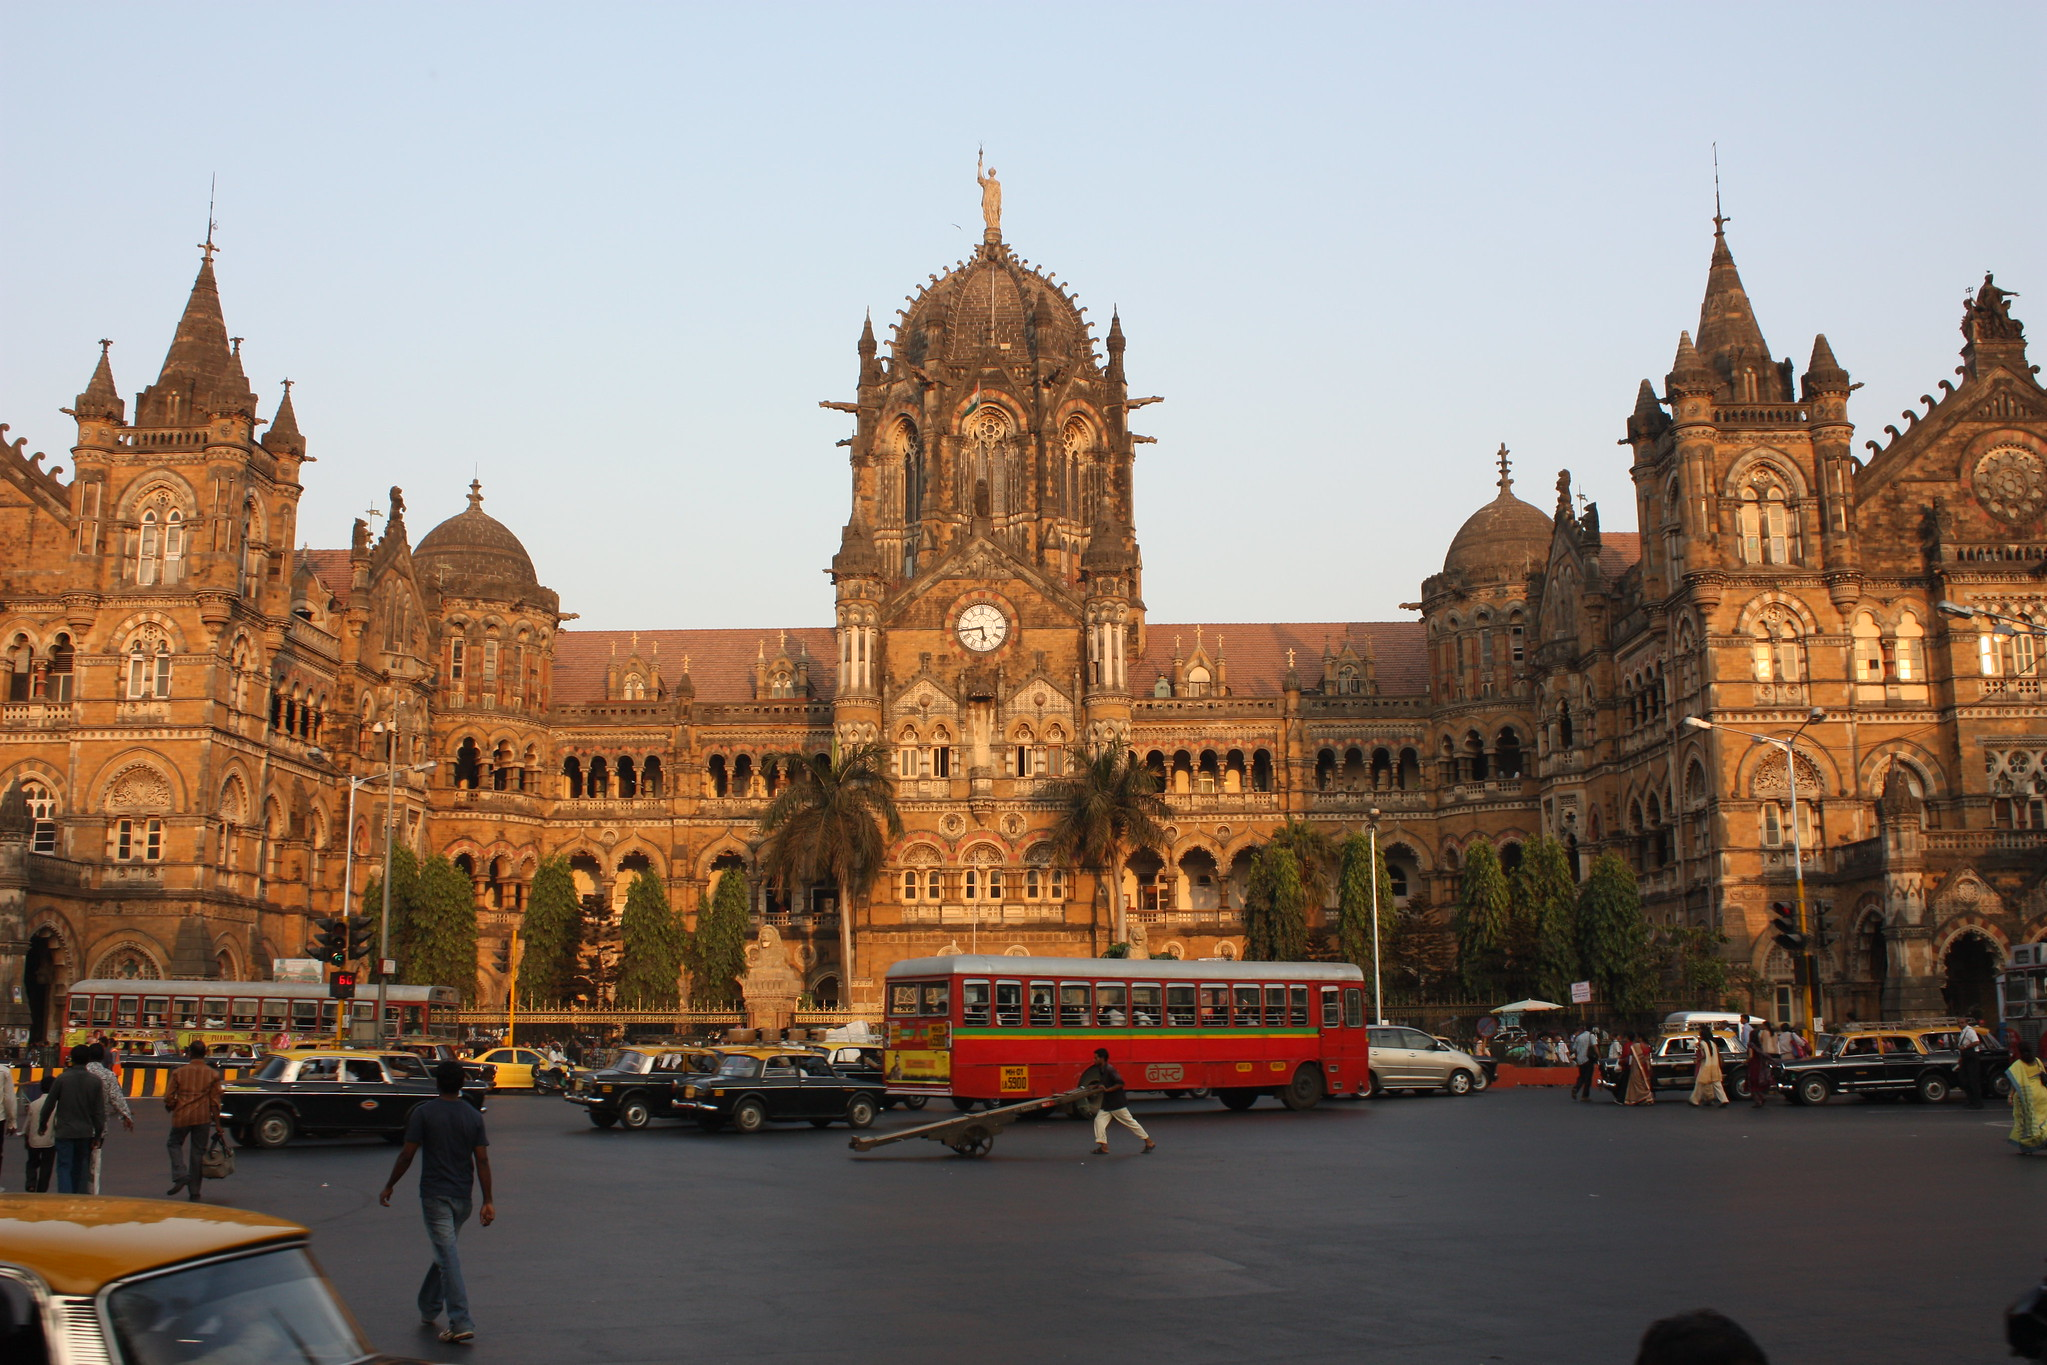 Victoria terminus, CST, things to do in India